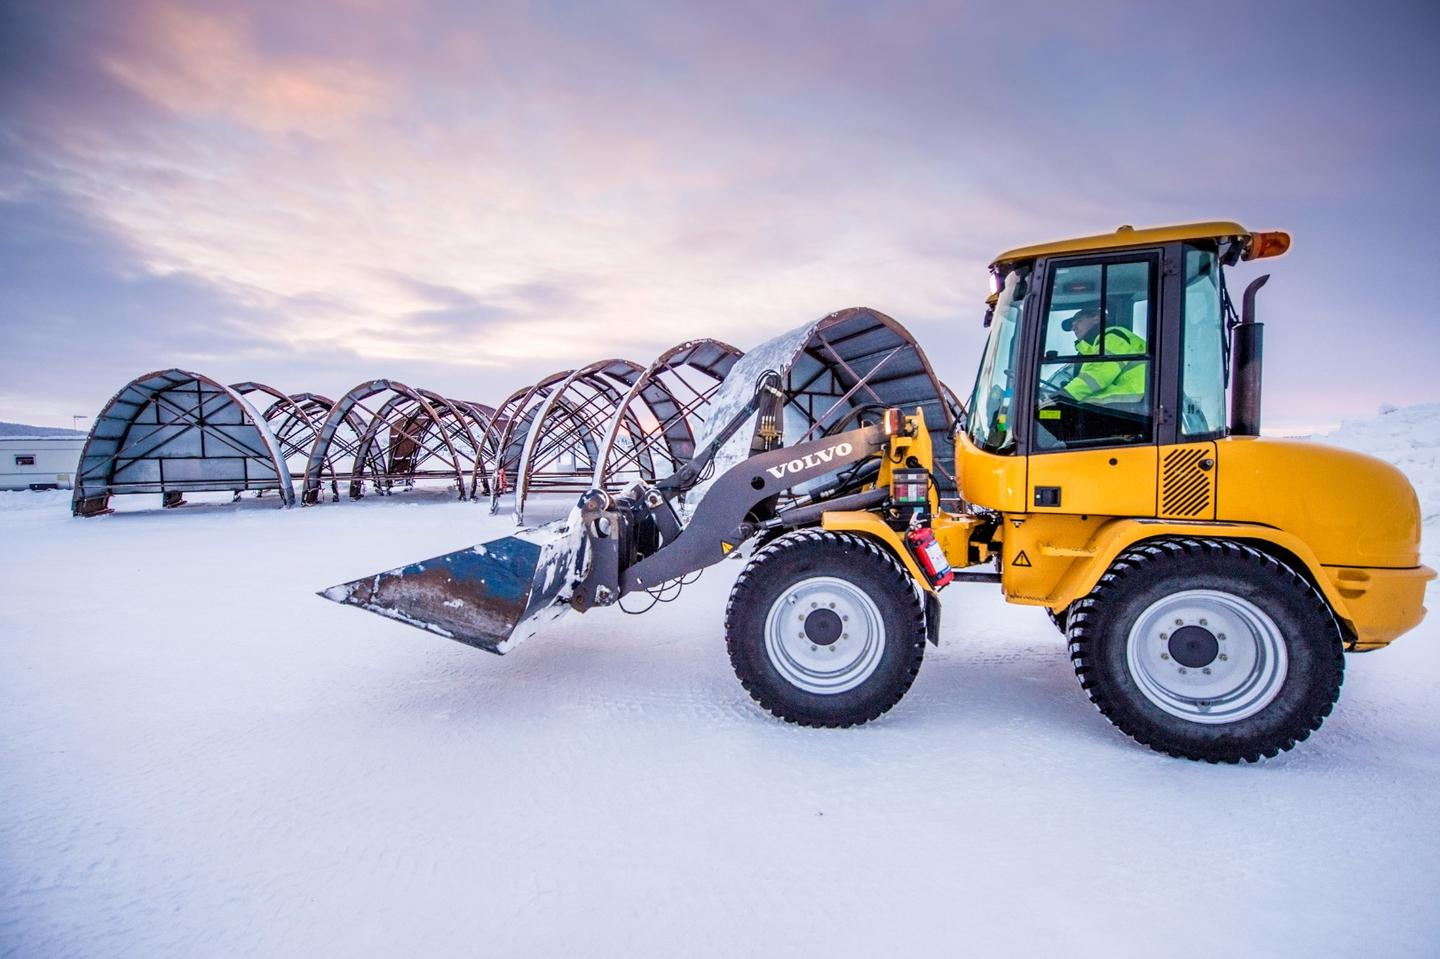 This year, along with the classic Icehotel, a permanent Icehotel 365 will be constructed